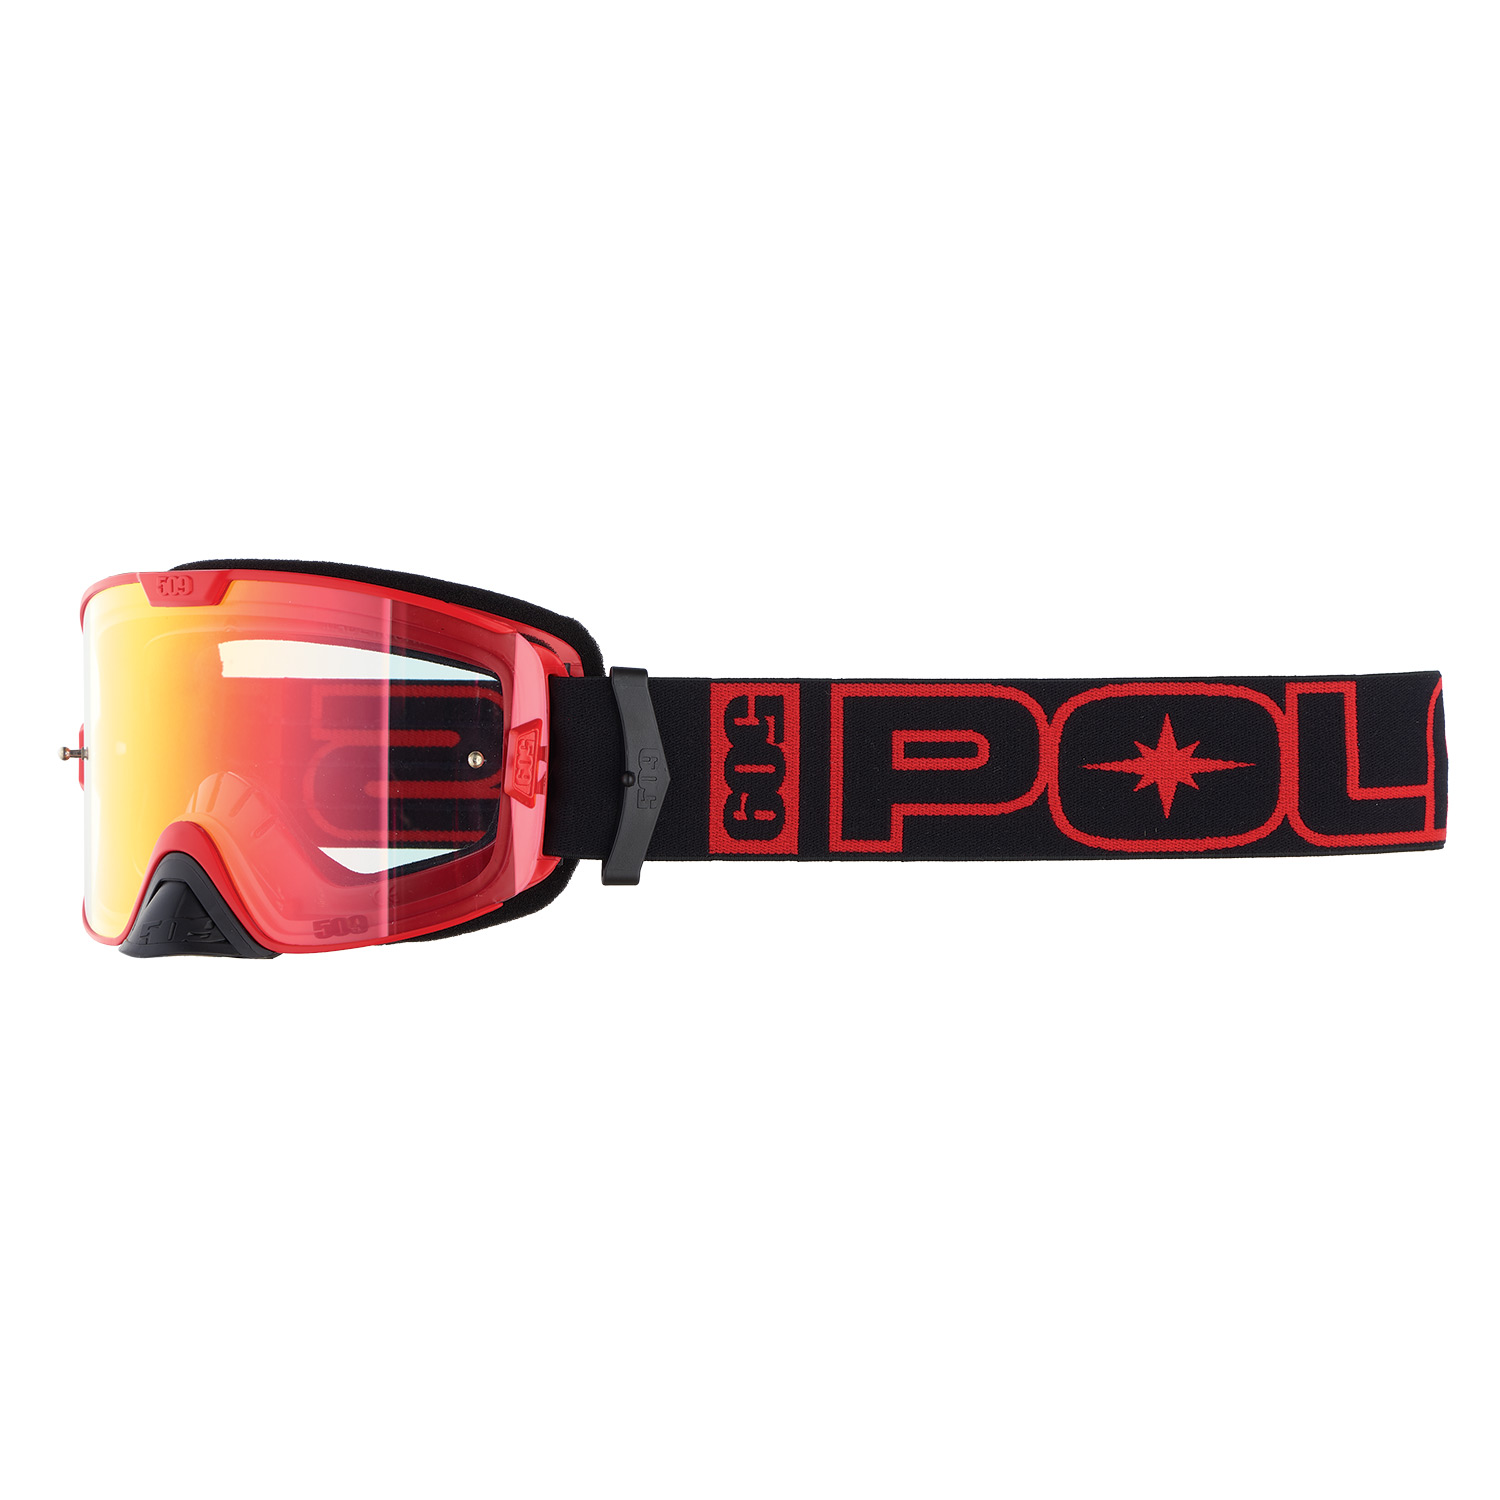 509® Kingpin Dirt Adult Goggle with Anti-Fog Coating, Red